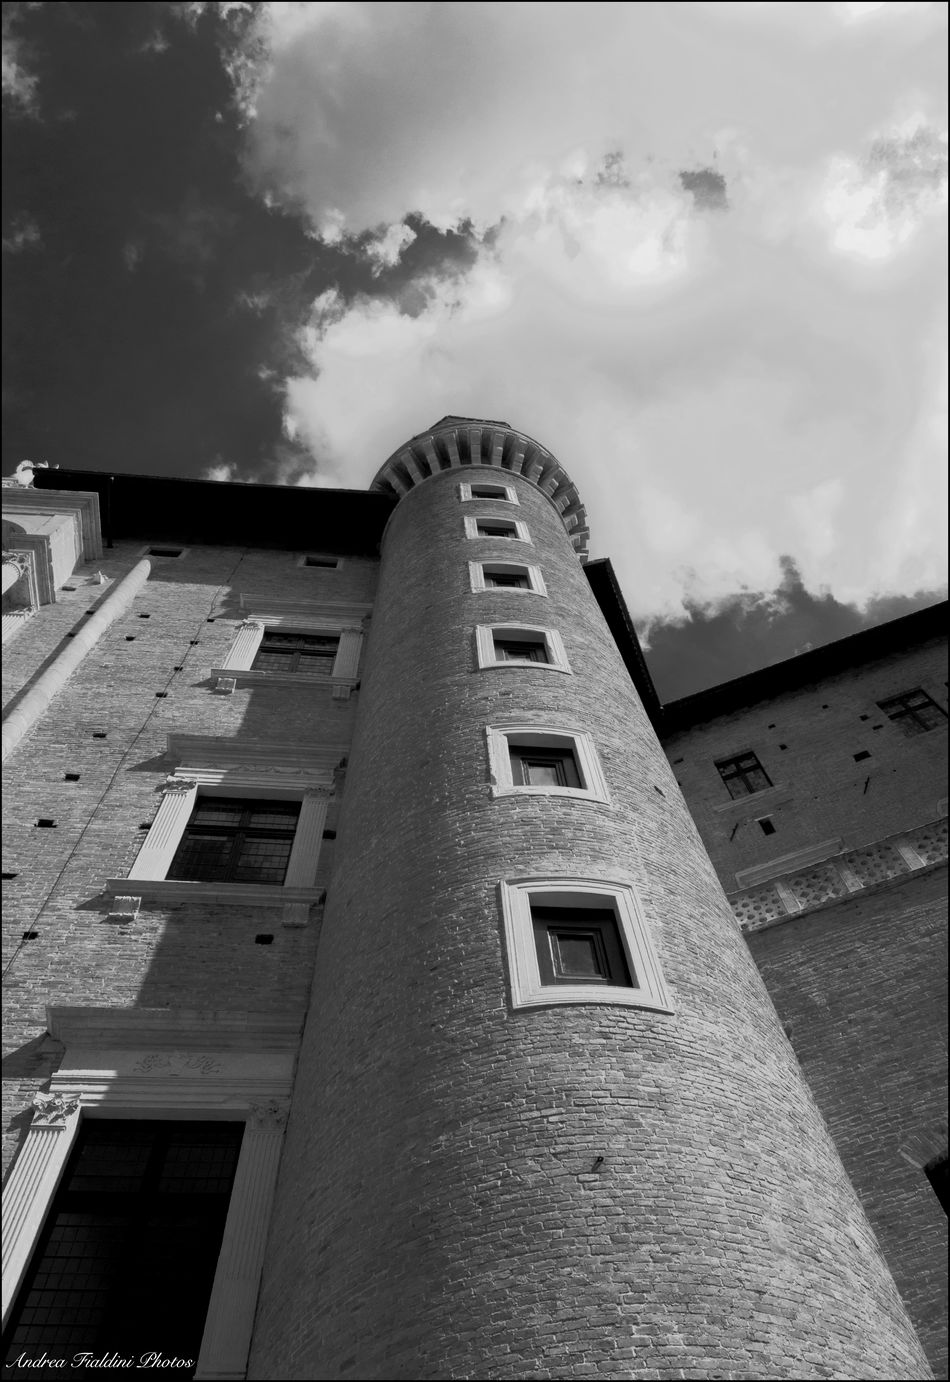 Architecture Architecture ArtWork Blackandwhite Building Exterior Built Structure Bw City Street Cloud - Sky Day Italy Low Angle View No People Orvieto Italy Orvieto, Italy Outdoors Sky Window